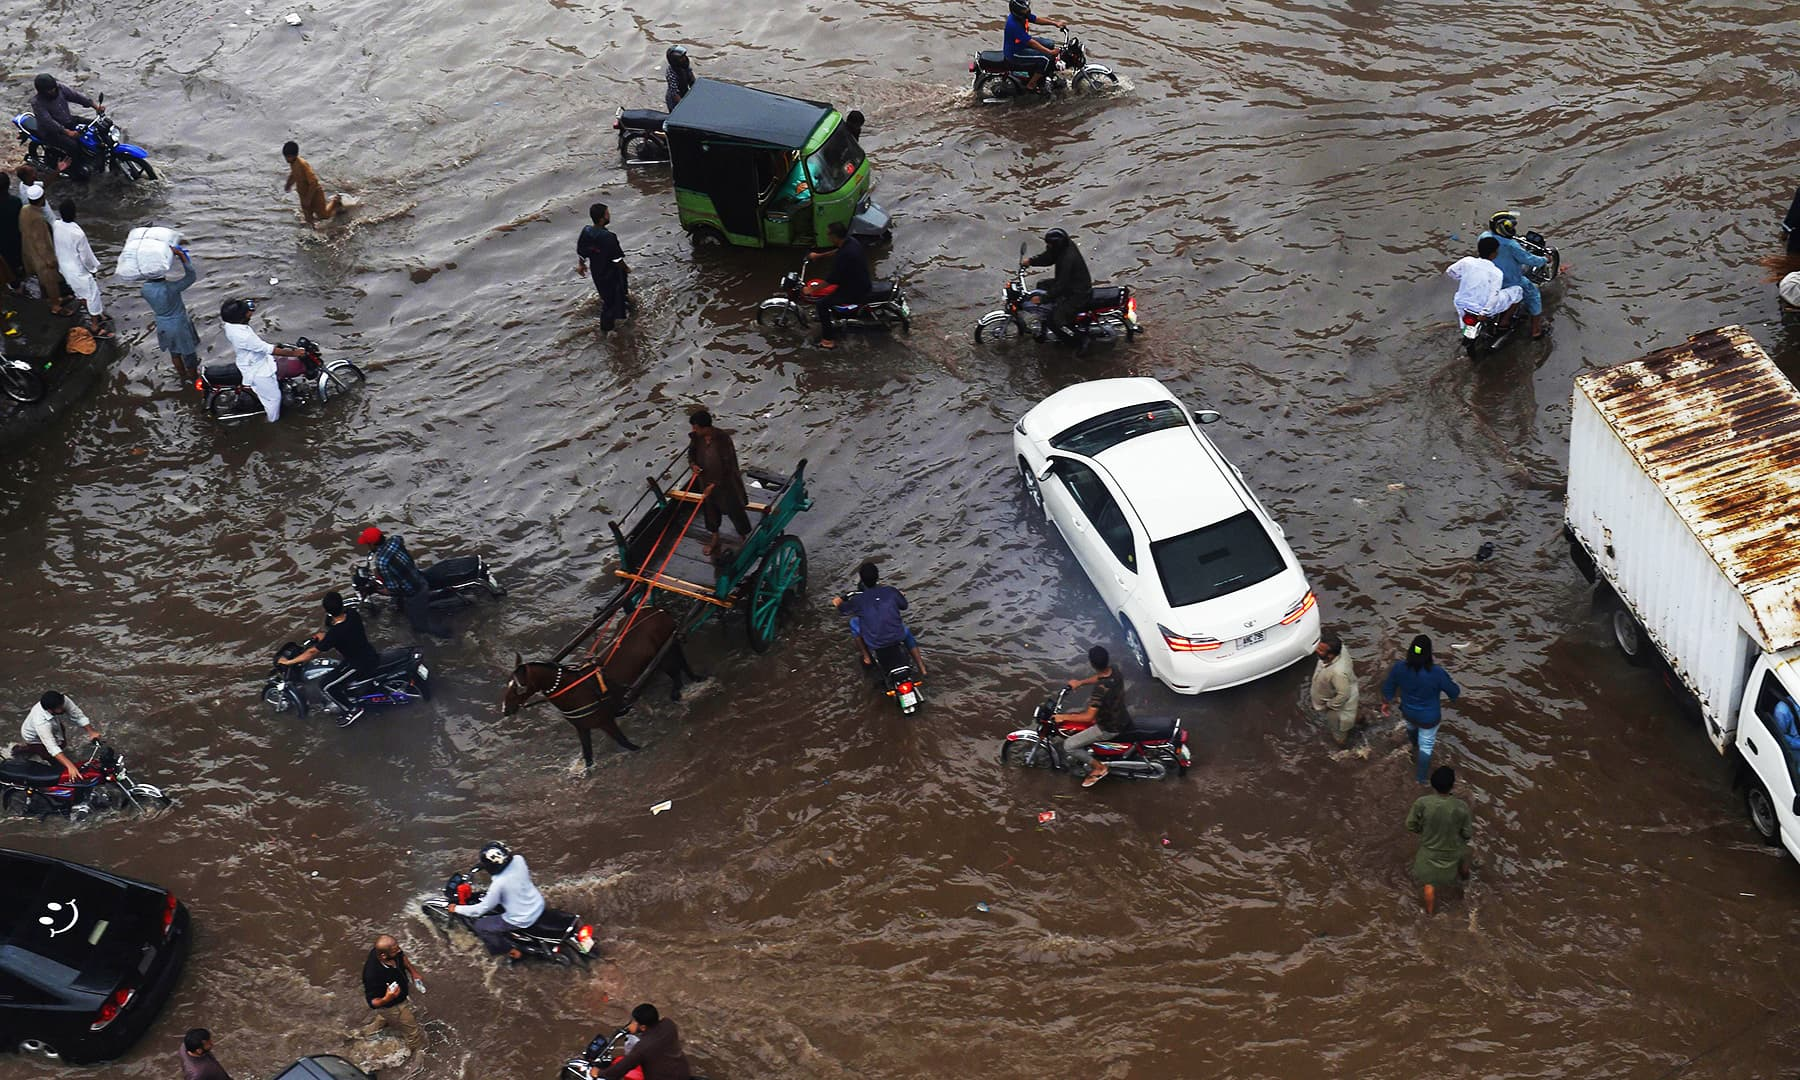 Commuters cross a flooded street after heavy monsoon rains in Lahore. — Reuters